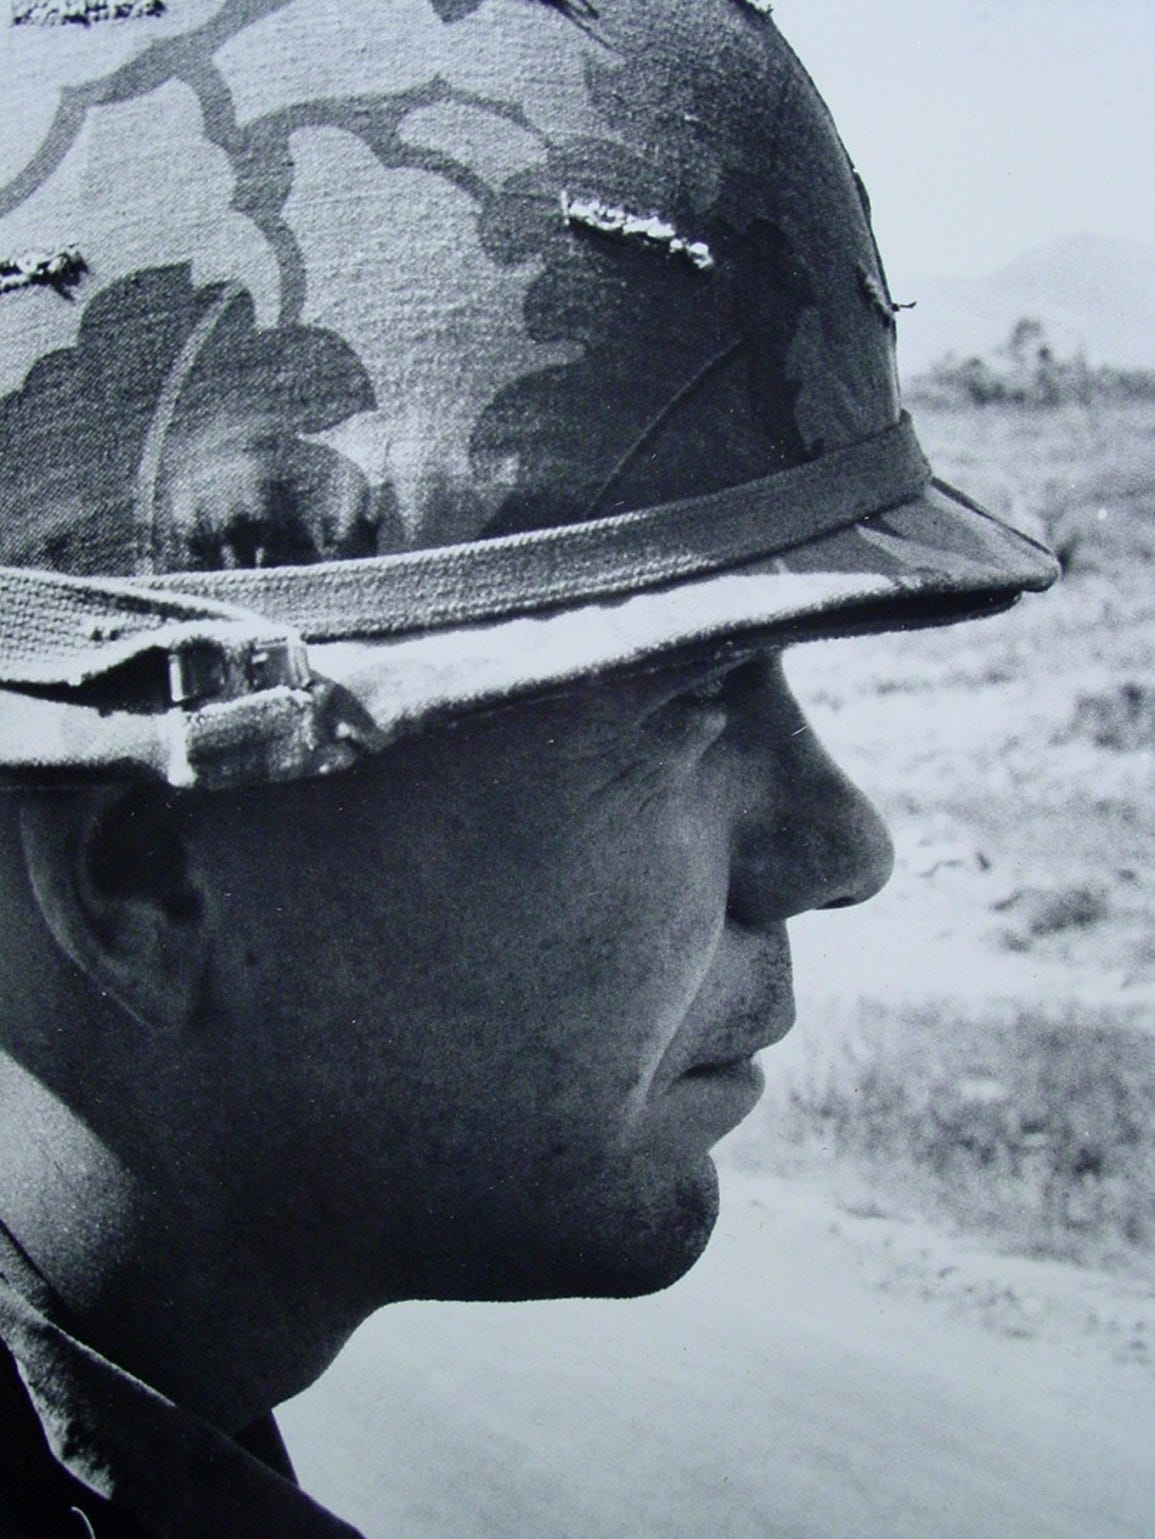 Bill Bontemps, a soldier in Vietnam in 1968, is still haunted by what he experienced that year.